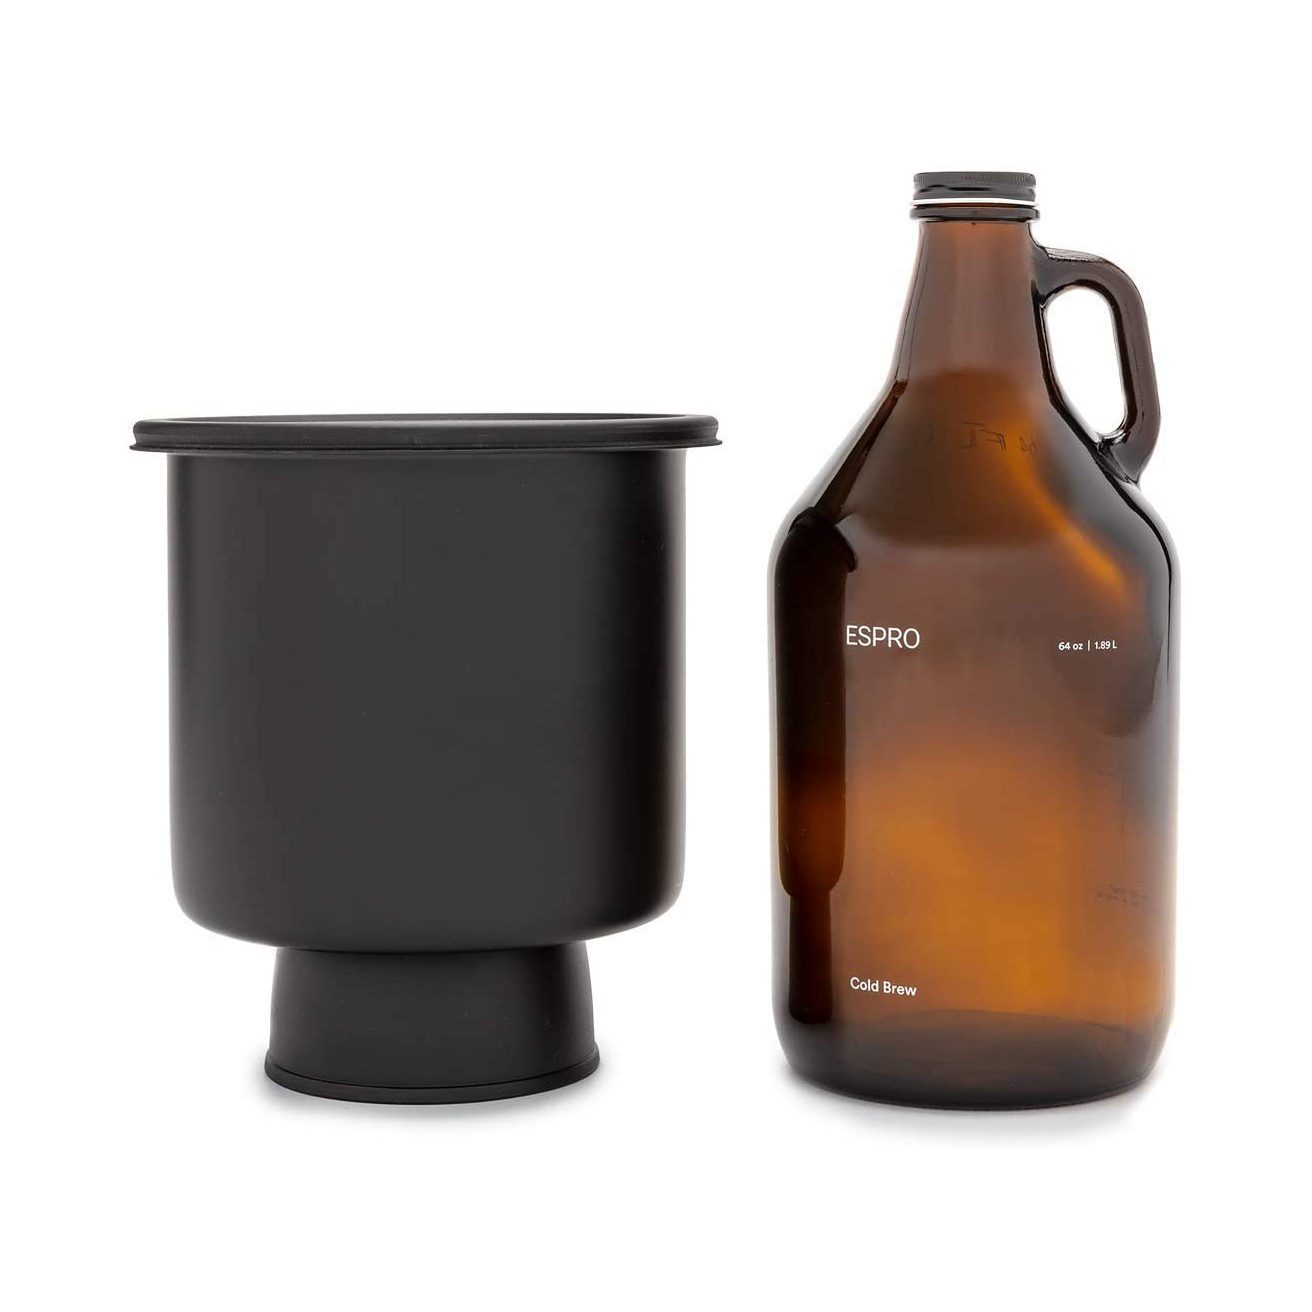 ESPRO Cold Brew Ice Coffee Brewing Kit